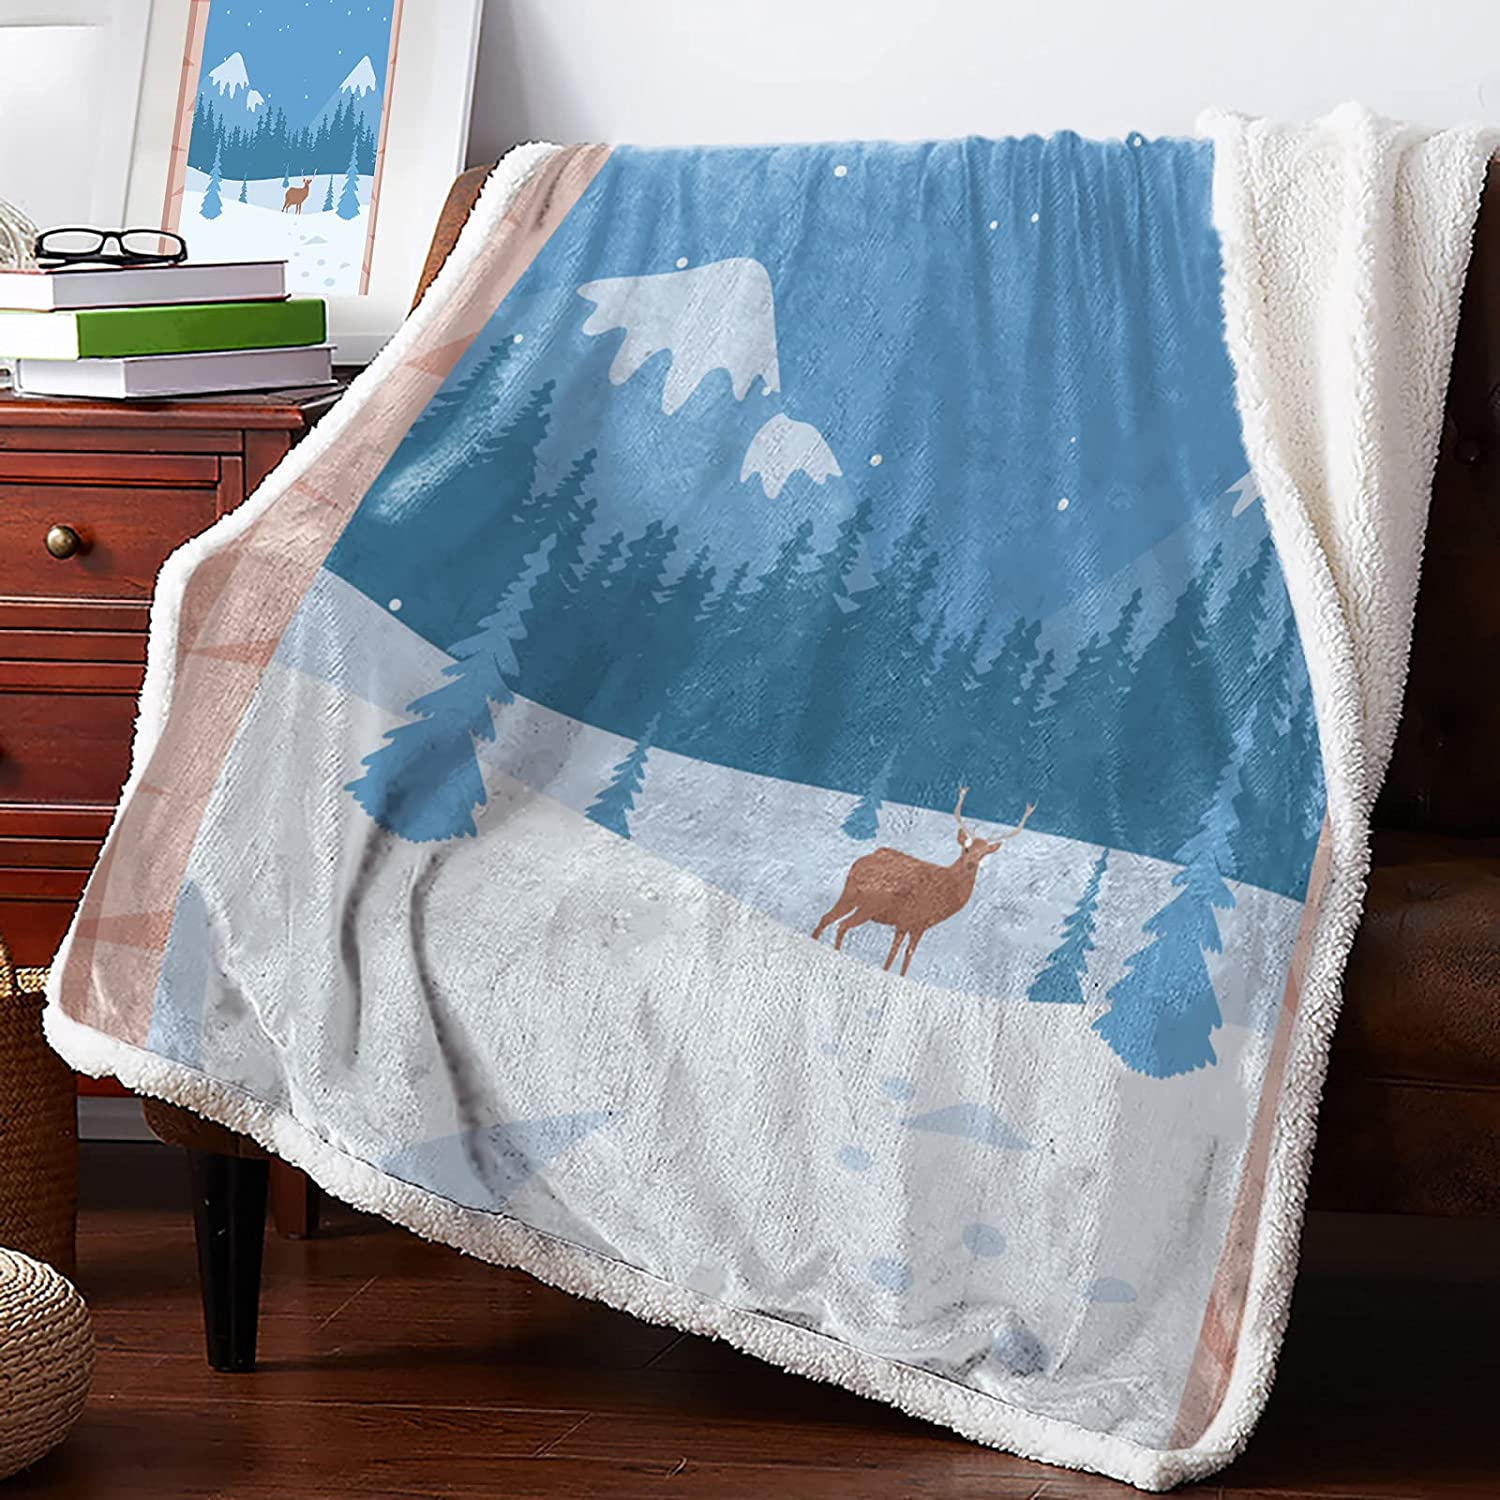 MuswannaA Sherpa Fleece Throw Blanket in Sup Today's only Reindeer Forest The Colorado Springs Mall